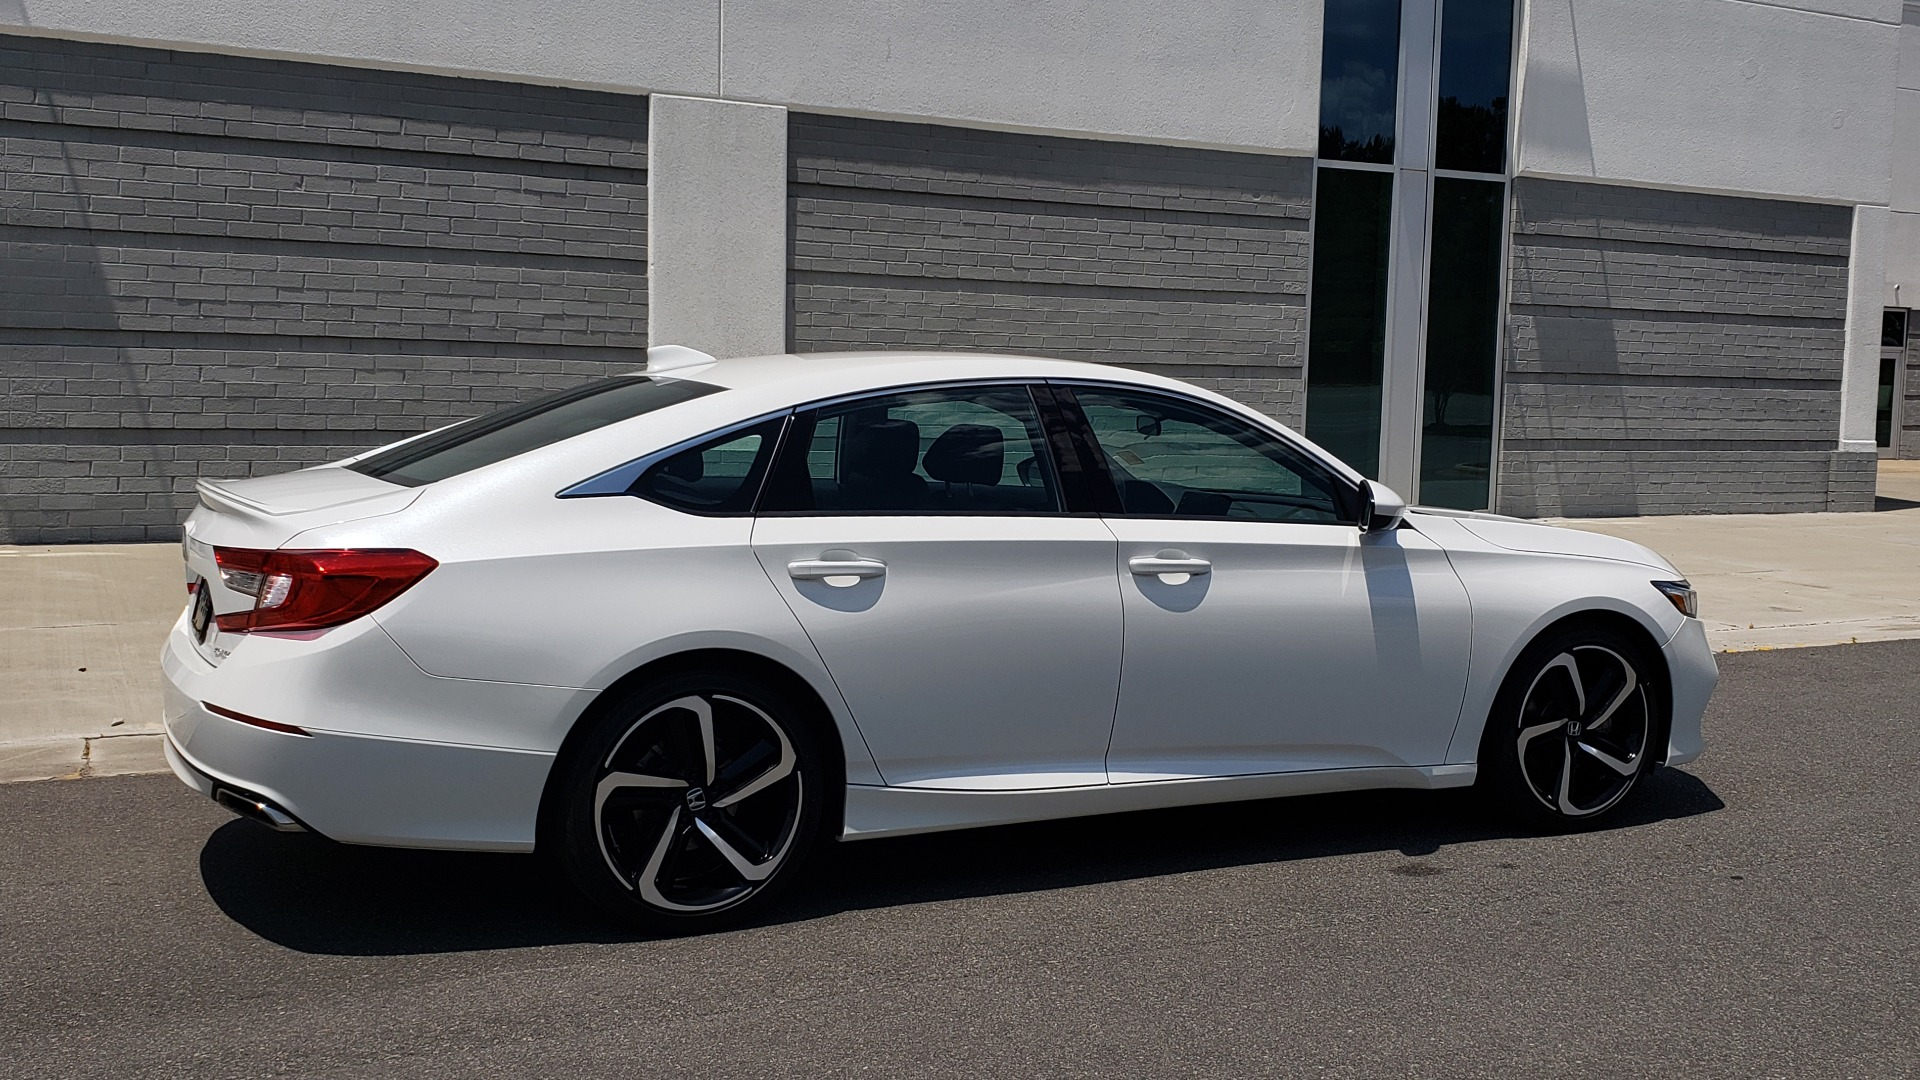 Used 2018 Honda ACCORD SEDAN SPORT 1.5T / CVT TRANS / FWD / 19IN WHEELS for sale $20,995 at Formula Imports in Charlotte NC 28227 9